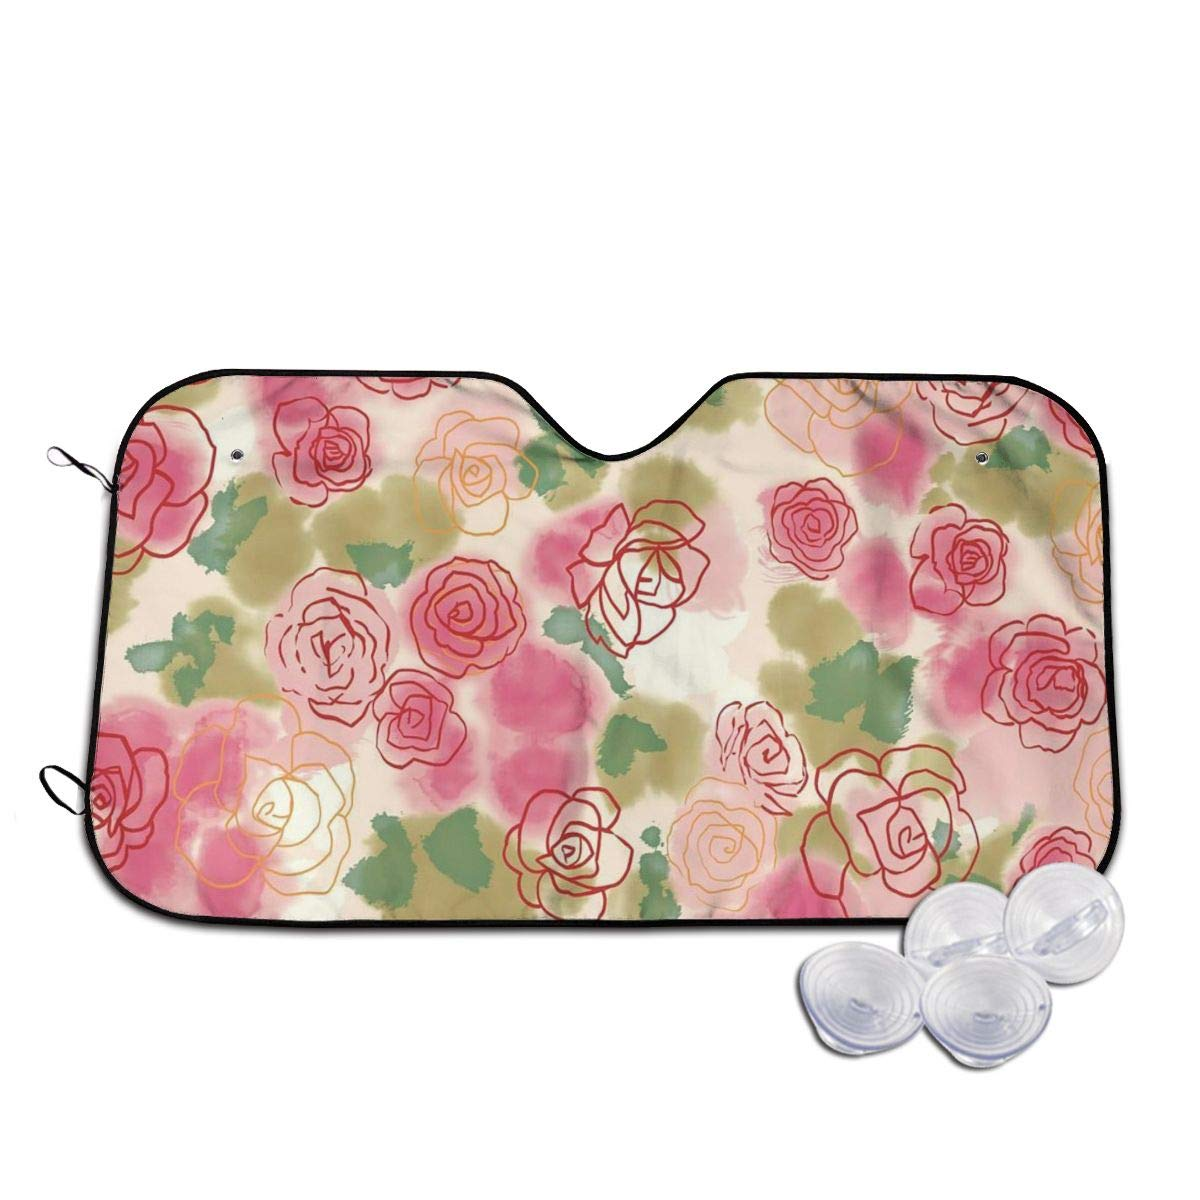 Flower Rose Ink Painting Windshields Sun Shade 3D Printed Long Lasting